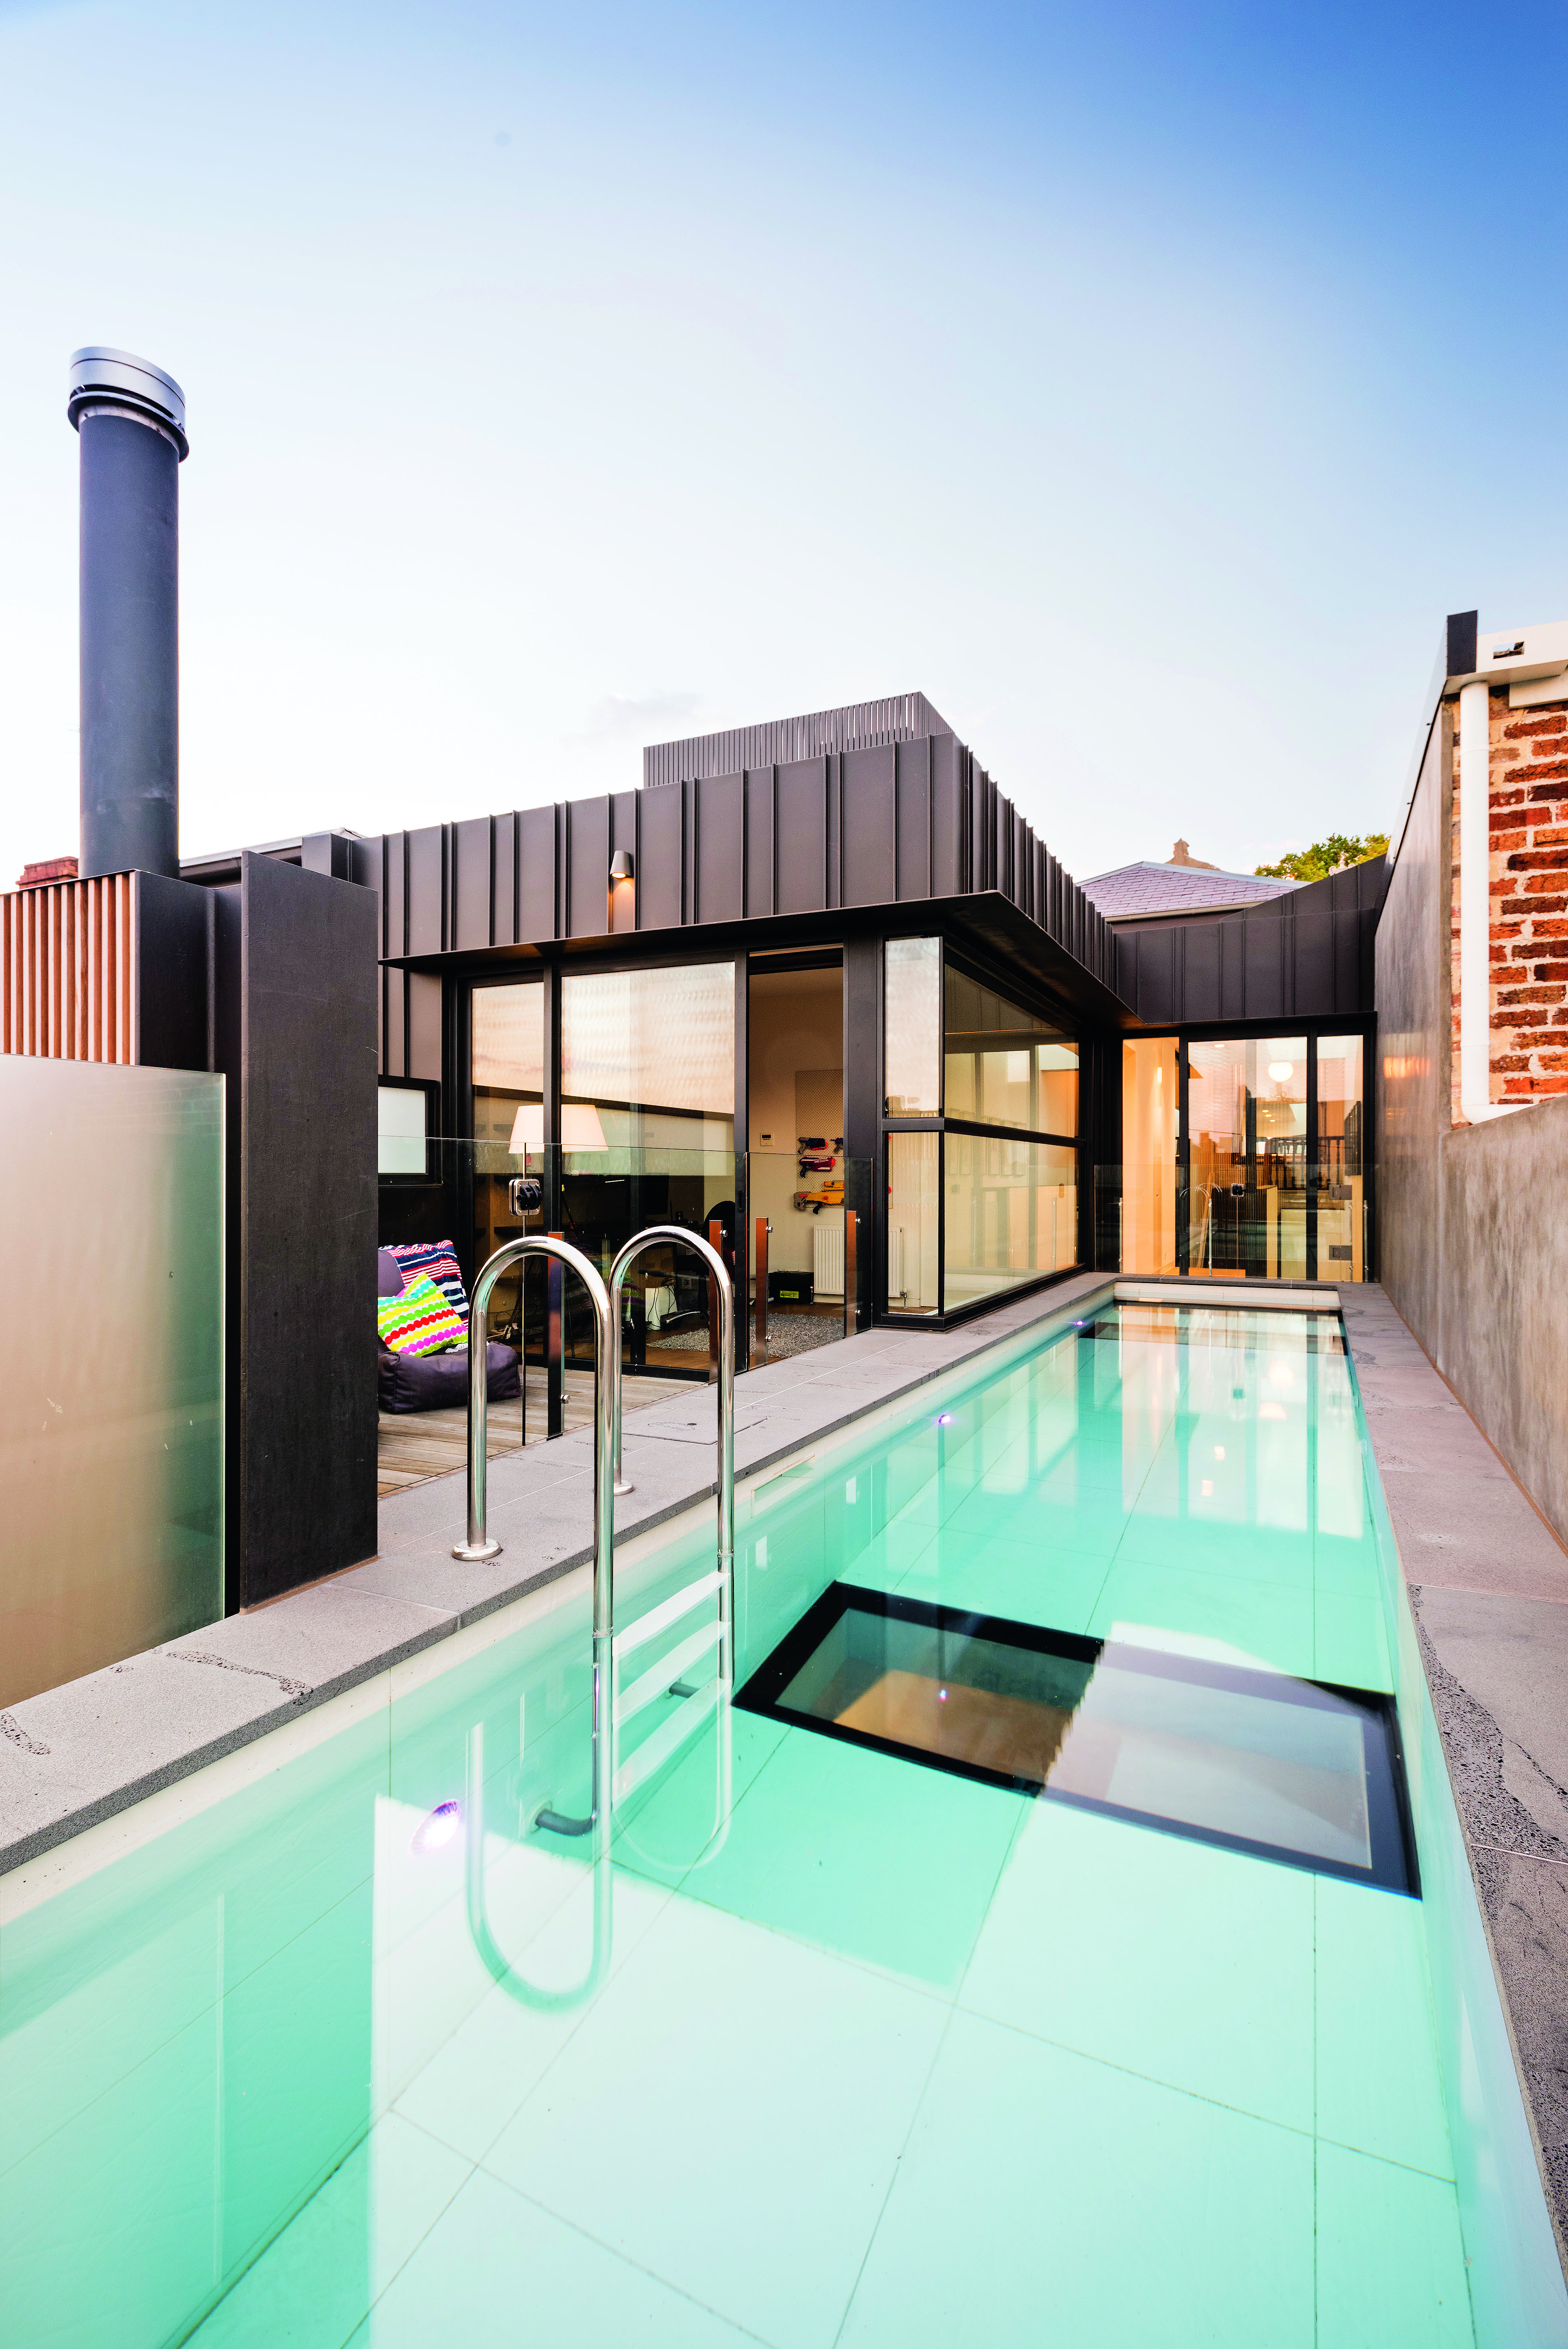 Rooftop pool: the only way is up